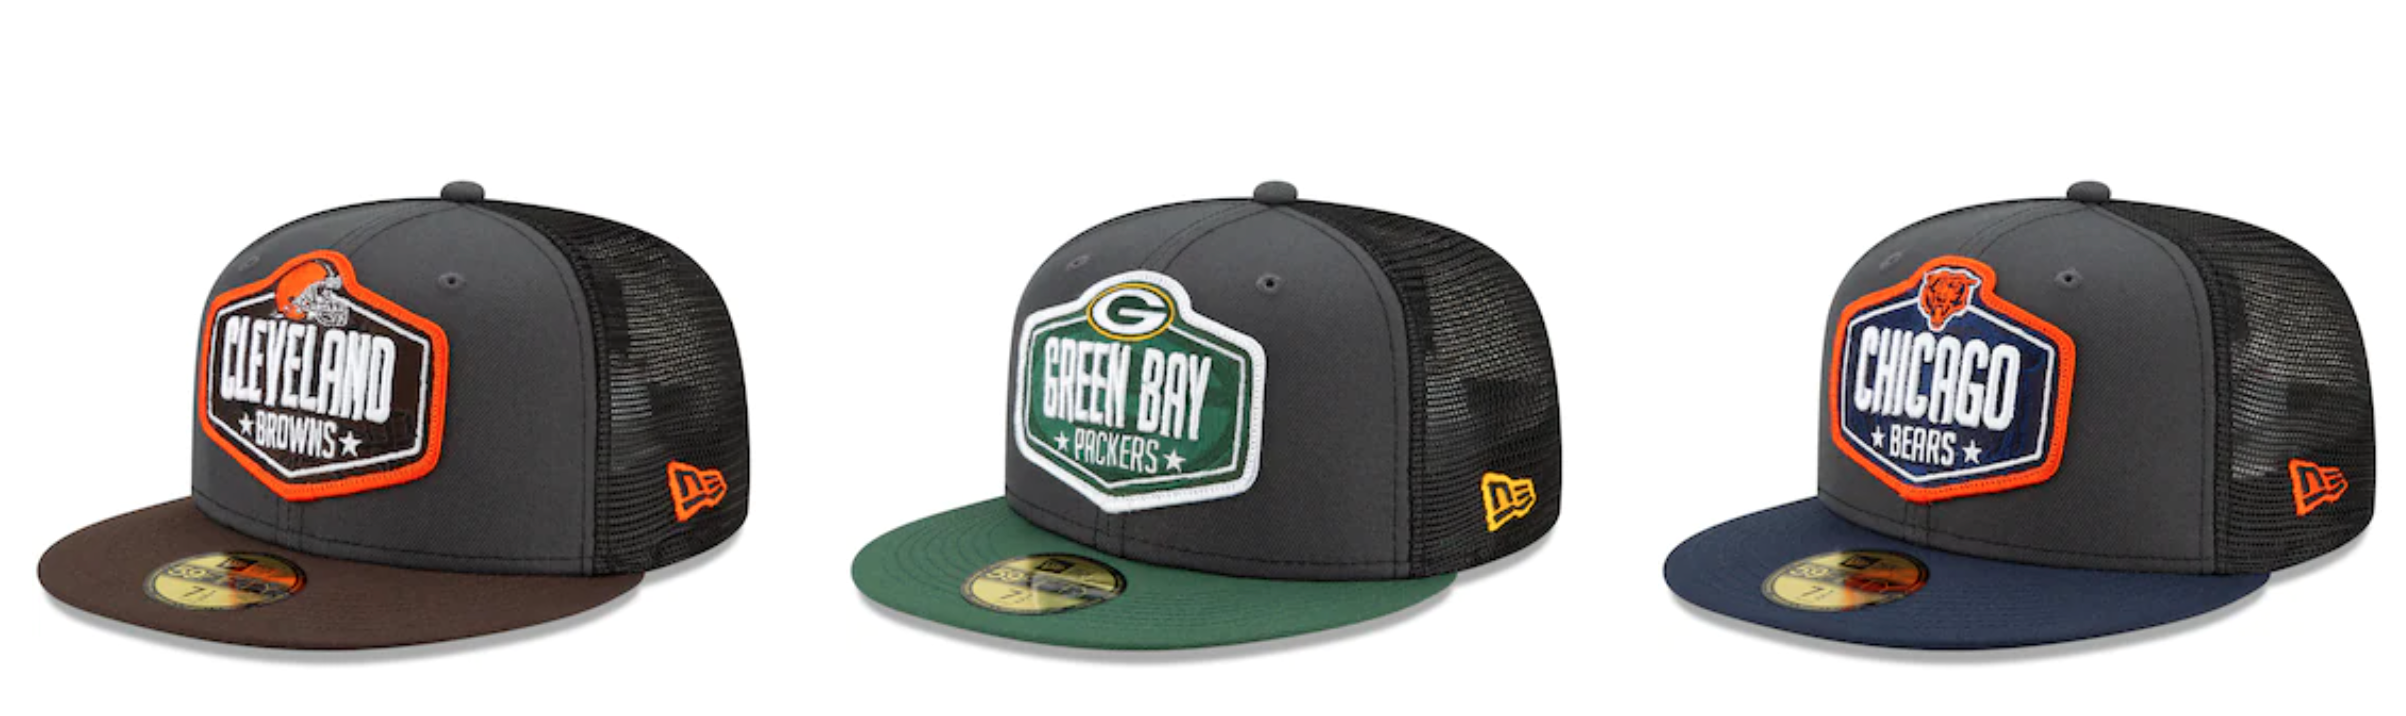 NFL Draft 2021 gear now on sale | How to buy the hats players will wear in  Cleveland, plus shirts - cleveland.com